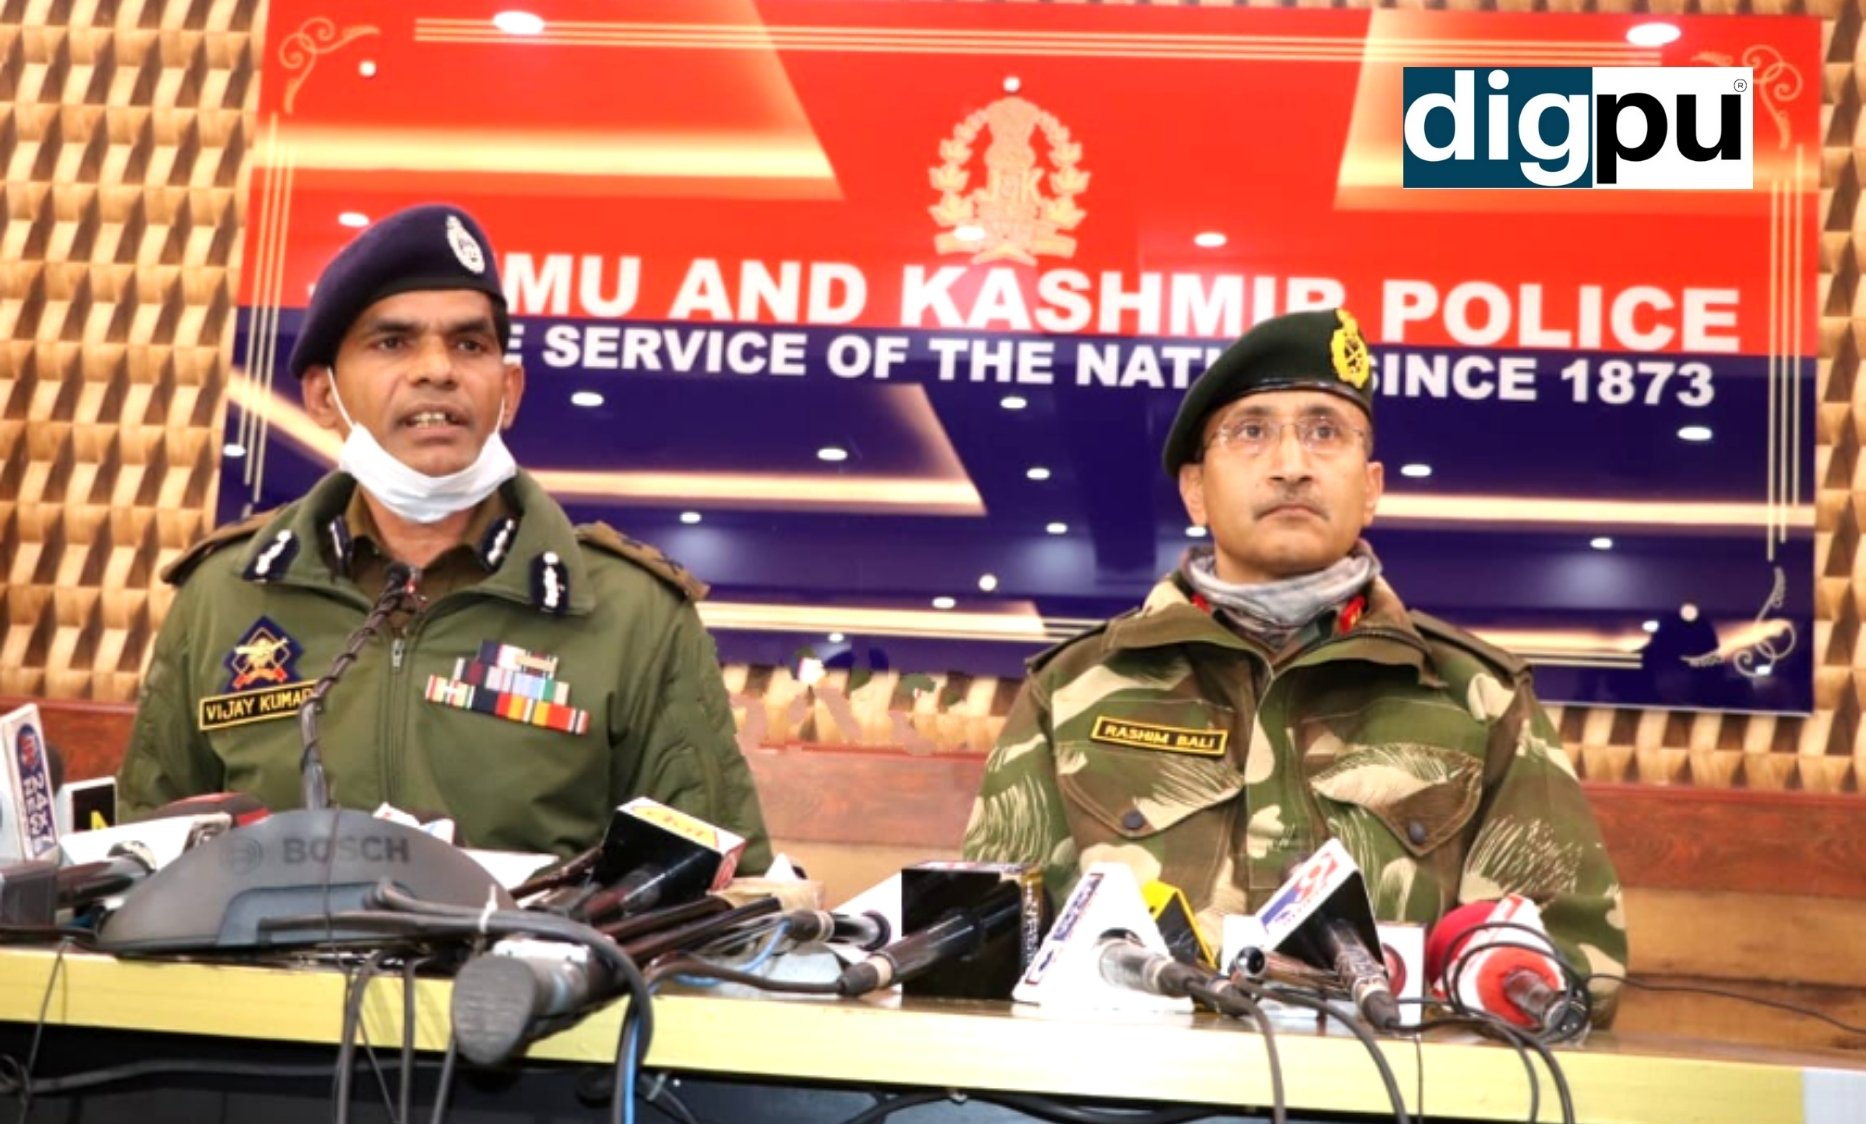 Despite repeated surrender appeals, militants opened fire in Shopian, says IGP Kashmir - Digpu News